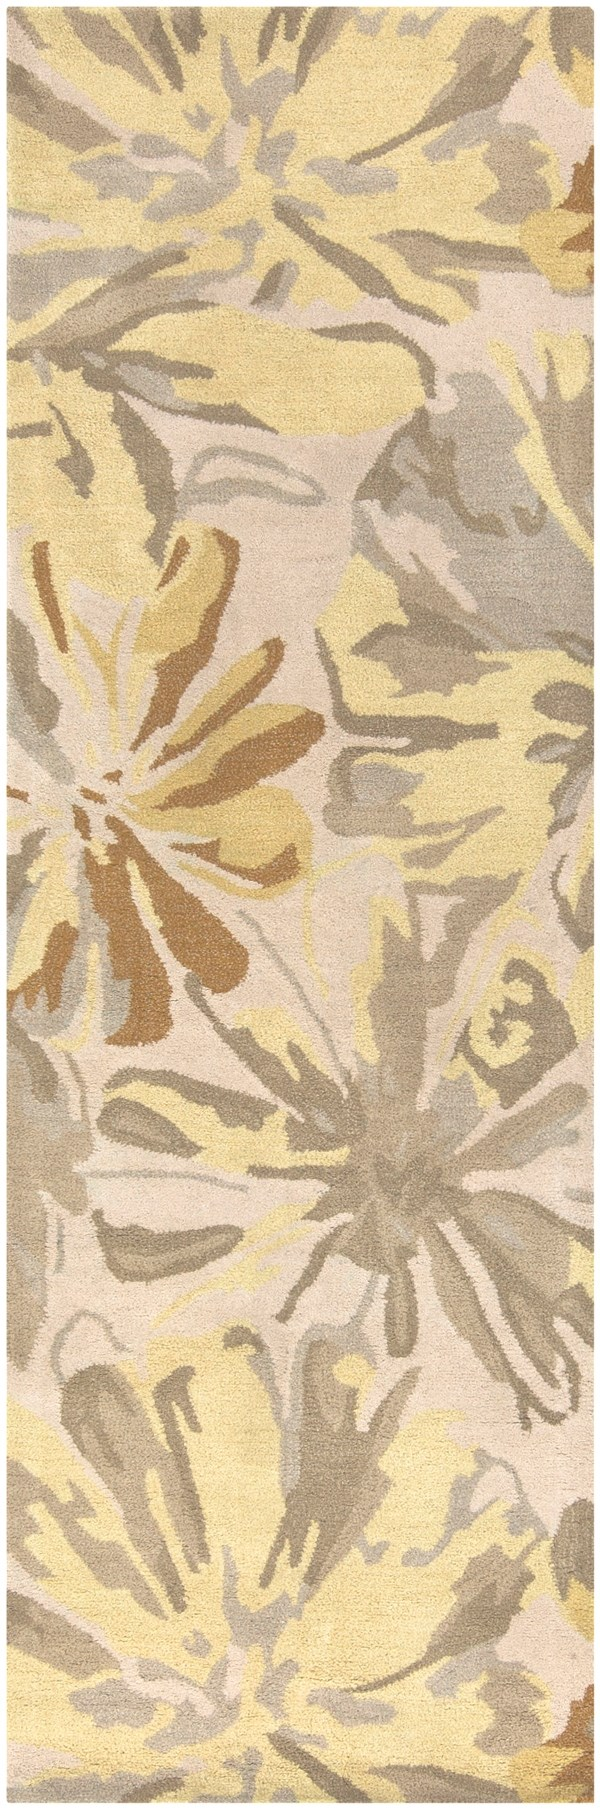 Ivory, Butter, Taupe, Lime Floral / Botanical Area Rug